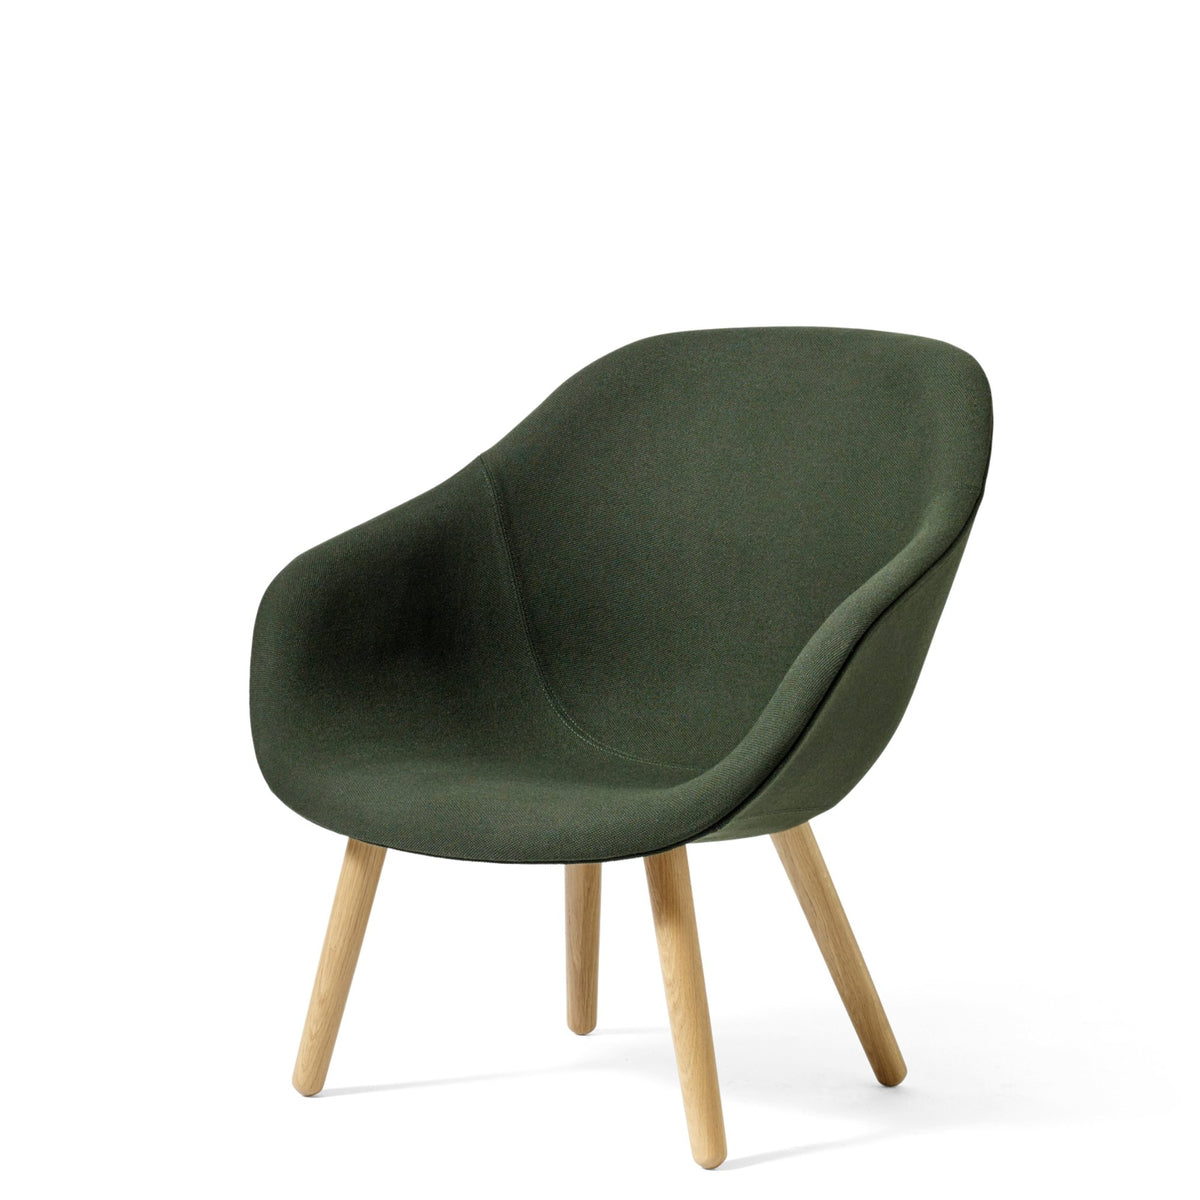 HAY About A Chair AAL82 Steelcut 0975 Without Cushion with Matt Lacquered Oak Base